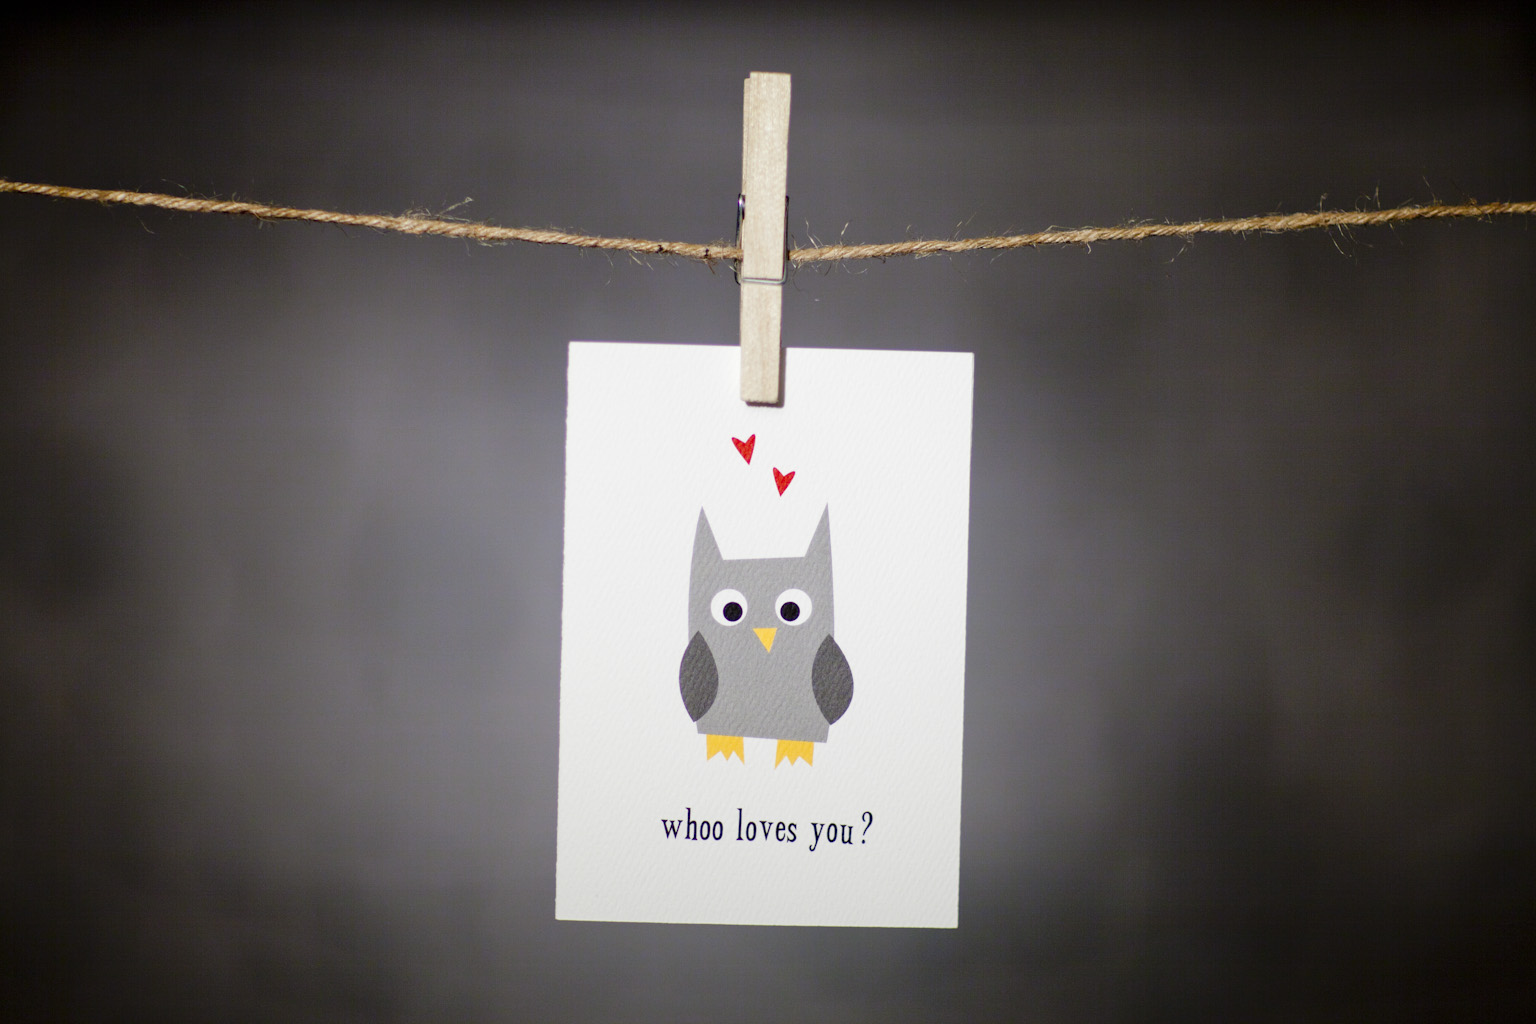 pURCHASE hEREtHIS sWEET LiTTLE oWL iS tHE pERFECT wAY tO sEND sOME LoVE tO sOMEONE sPECIAL. wHILE tHE oUTSIDE rEADS: {quote}hoo loves you?,{quote} tHE iNSIDE hAS bEEN LeFT bLANK fOR yOUR oWN hEARTFELT sENTIMENTS.eACH cARD iS pRINTED oN 100# sUNDANCE aRT pAPER wITH fELT fINISH. eACH oNE mEASURES 3.5{quote} x 5{quote} aND iS aCCOMPANIED bY a cOORDINATING rECYCLED kRAFT pAPER 4 bAR eNVELOPE. dOODLEgIRL cARDS aRE pROFESSIONALLY pRINTED + iNDIVIDUALLY pACKAGED iN cELLOPHANE wRAPS tO kEEP tHEM pRISTINE uNTIL yOU aRE rEADY tO sHARE tHEM wITH tHE wORLD.cRAFTED + pRINTED iN bOULDER, cOLORADO, uSA.